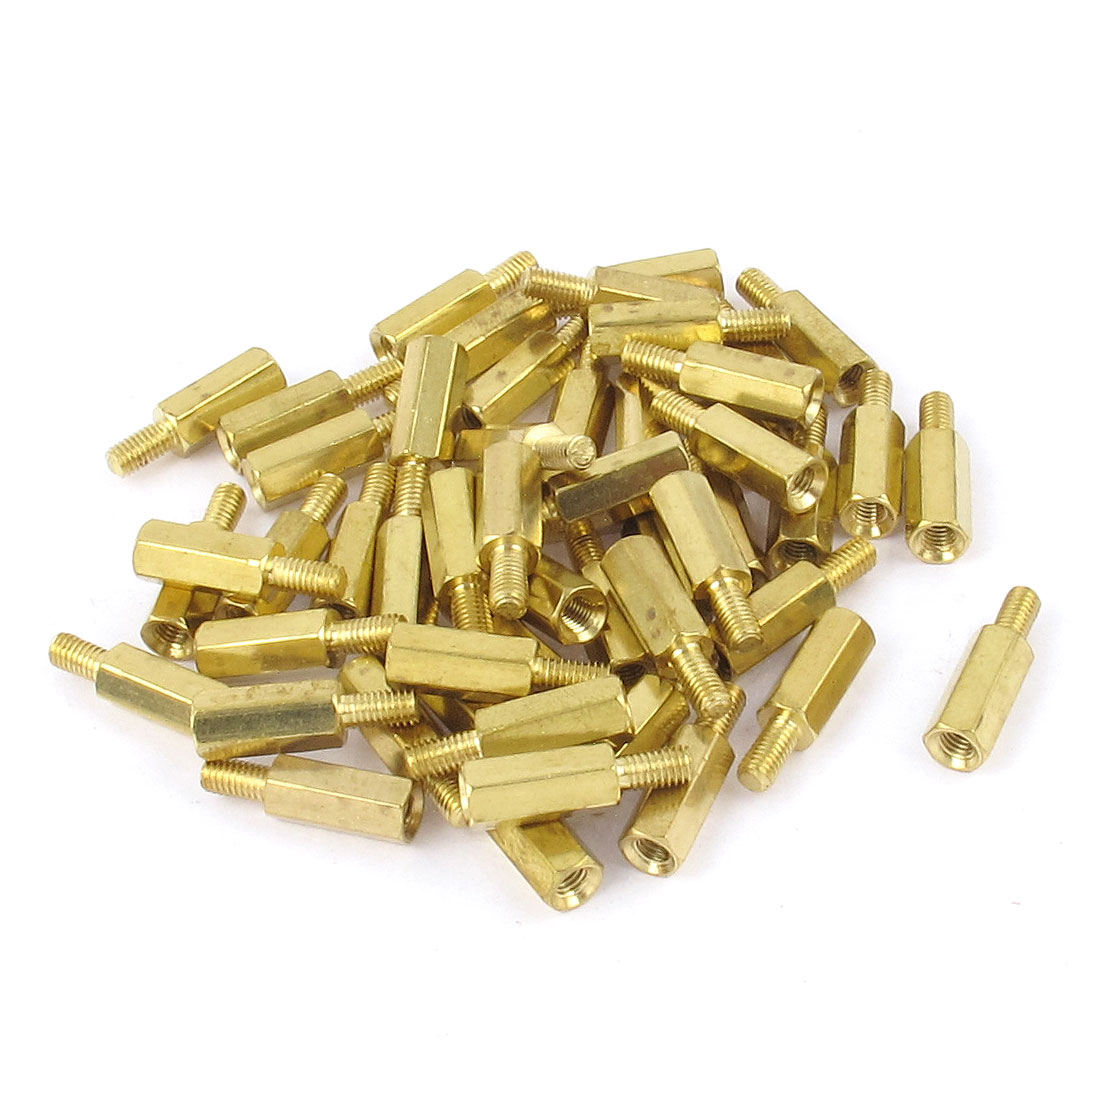 50pcs M3 Female 11mm to Male 6mm Hexagonal Nut Brass Standoff Spacer PCB Motherboard Pillar M3x11+6mm